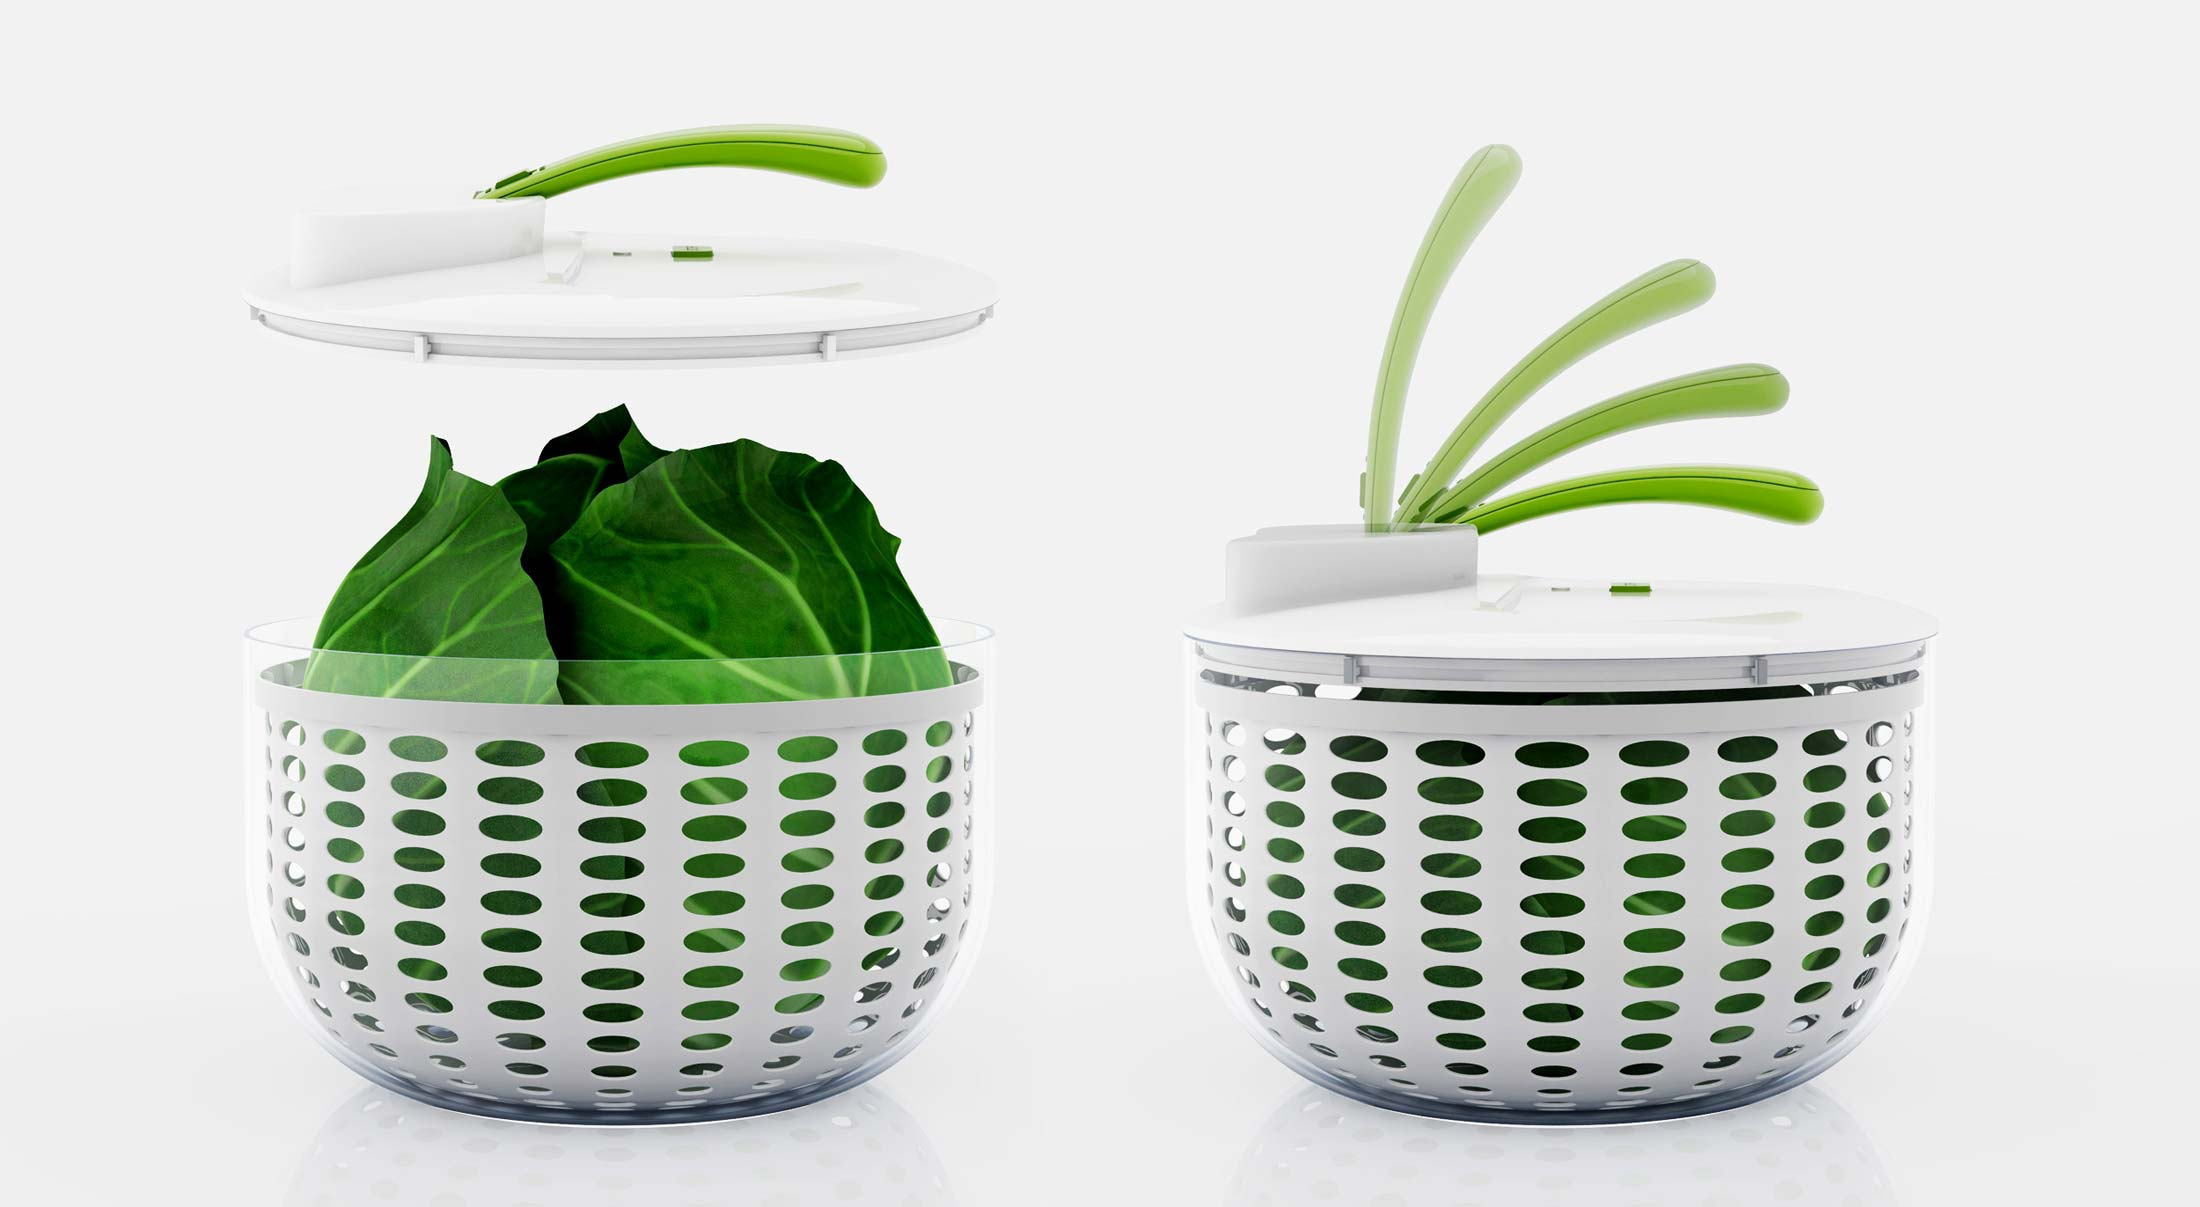 Showcasing Product Visualization here 3D model - Salad Spinner